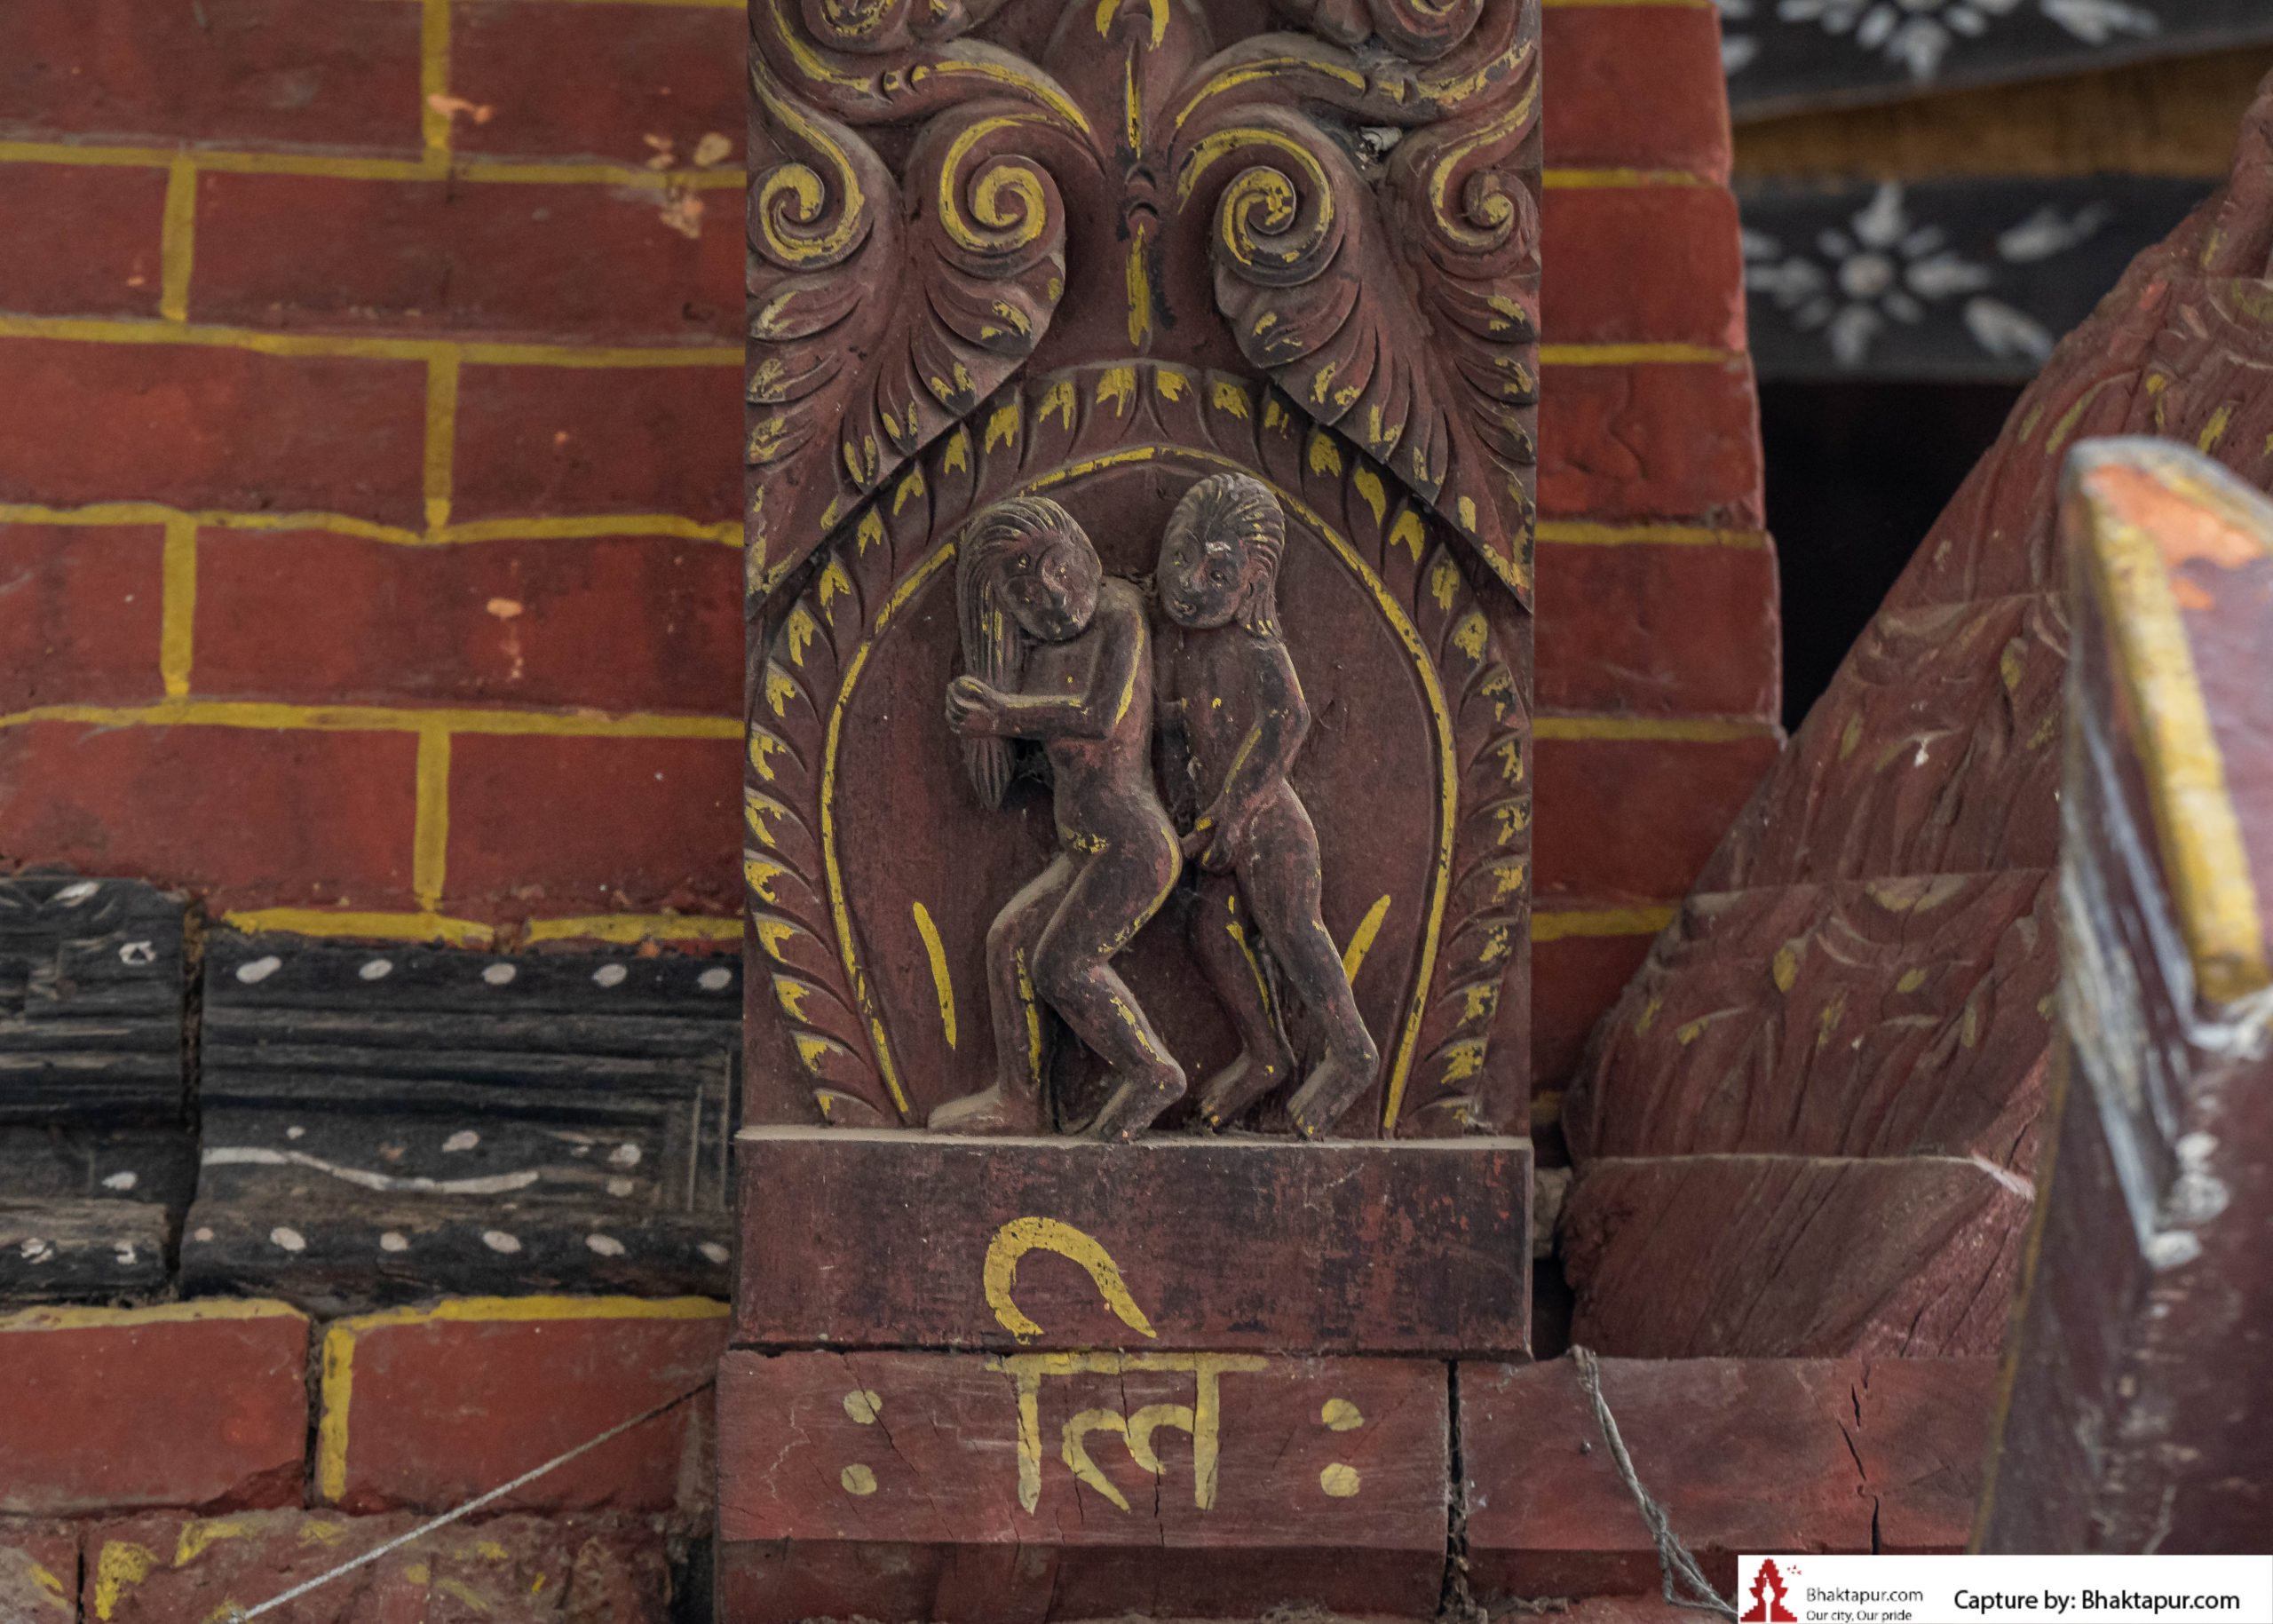 https://www.bhaktapur.com/wp-content/uploads/2021/08/erotic-carving-52-of-137-scaled.jpg